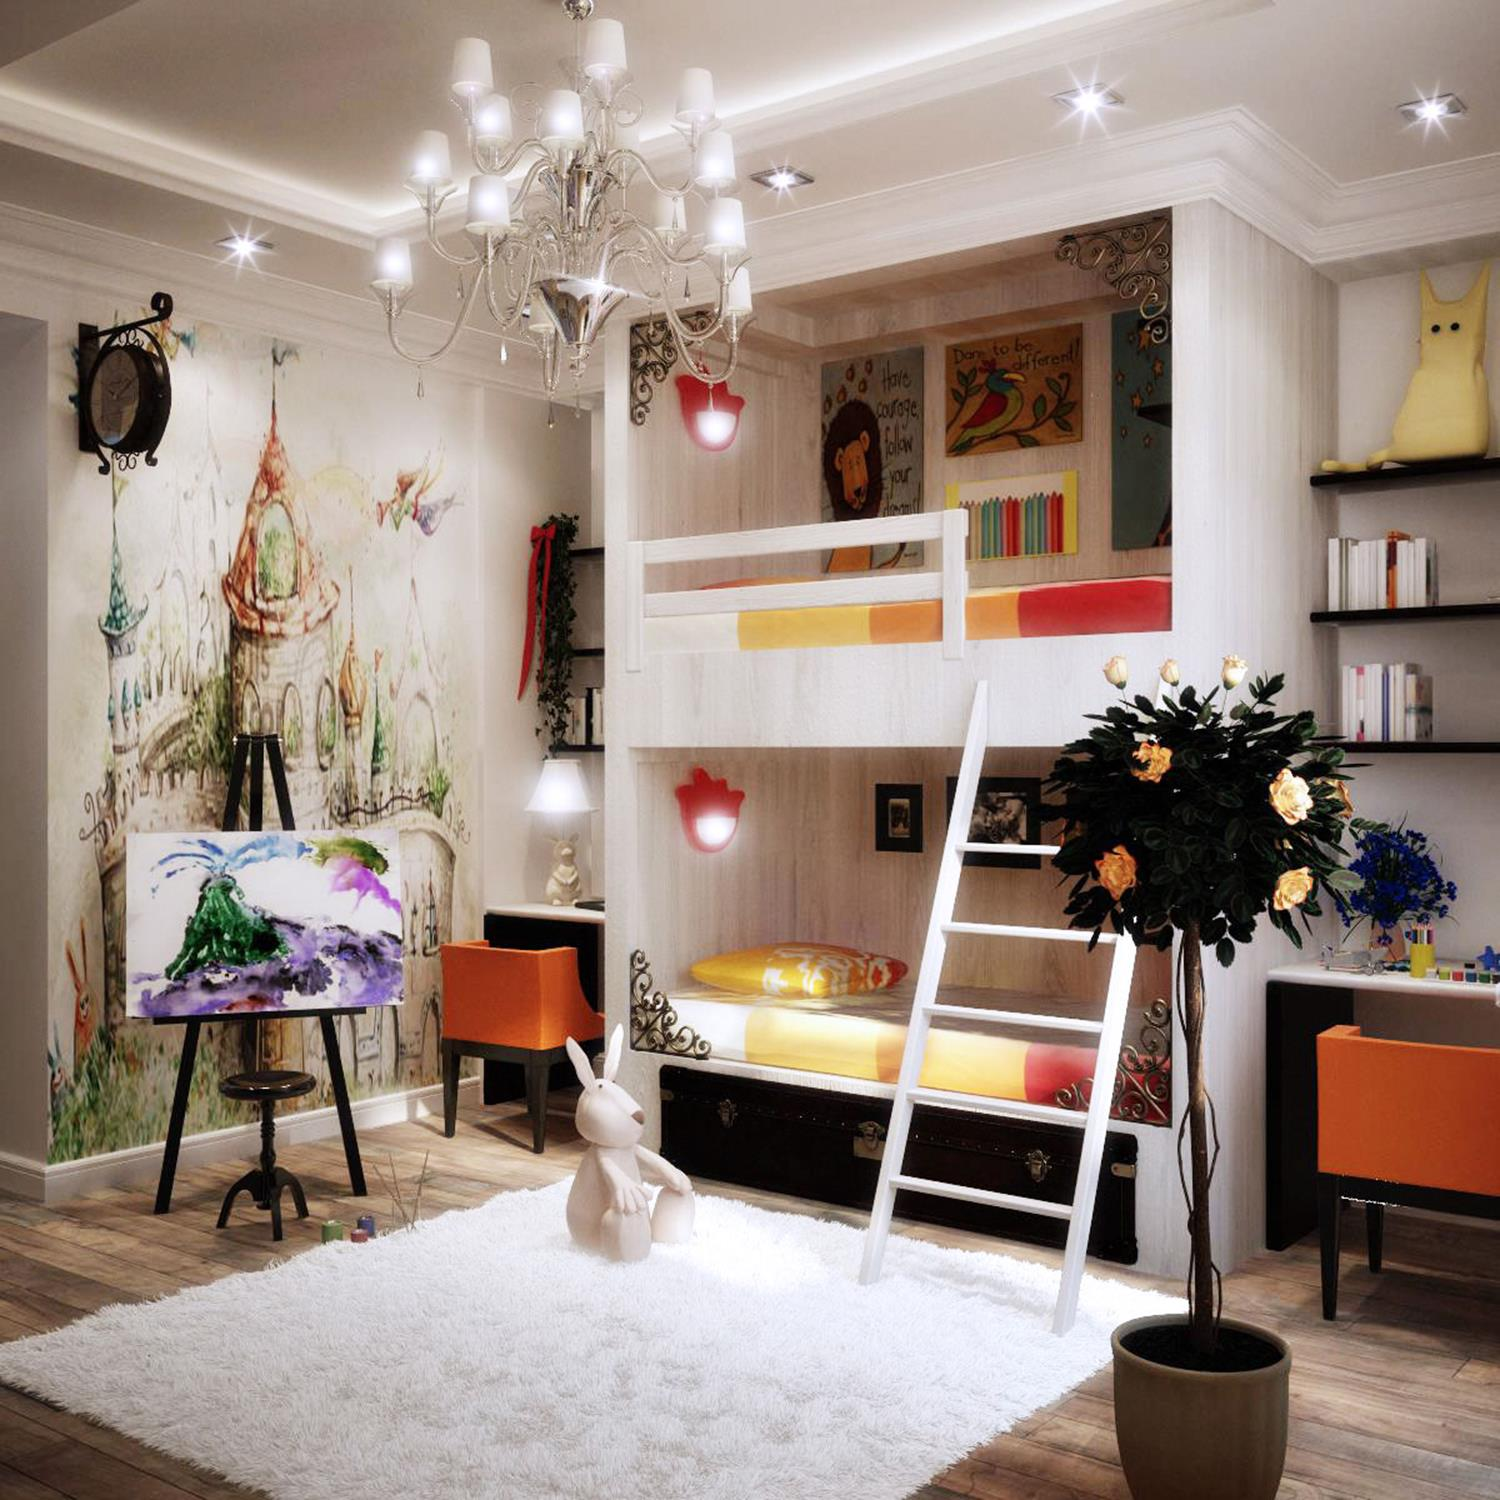 Color Full Kids Room Decorating Ideas On A Budget 36 Decorelated